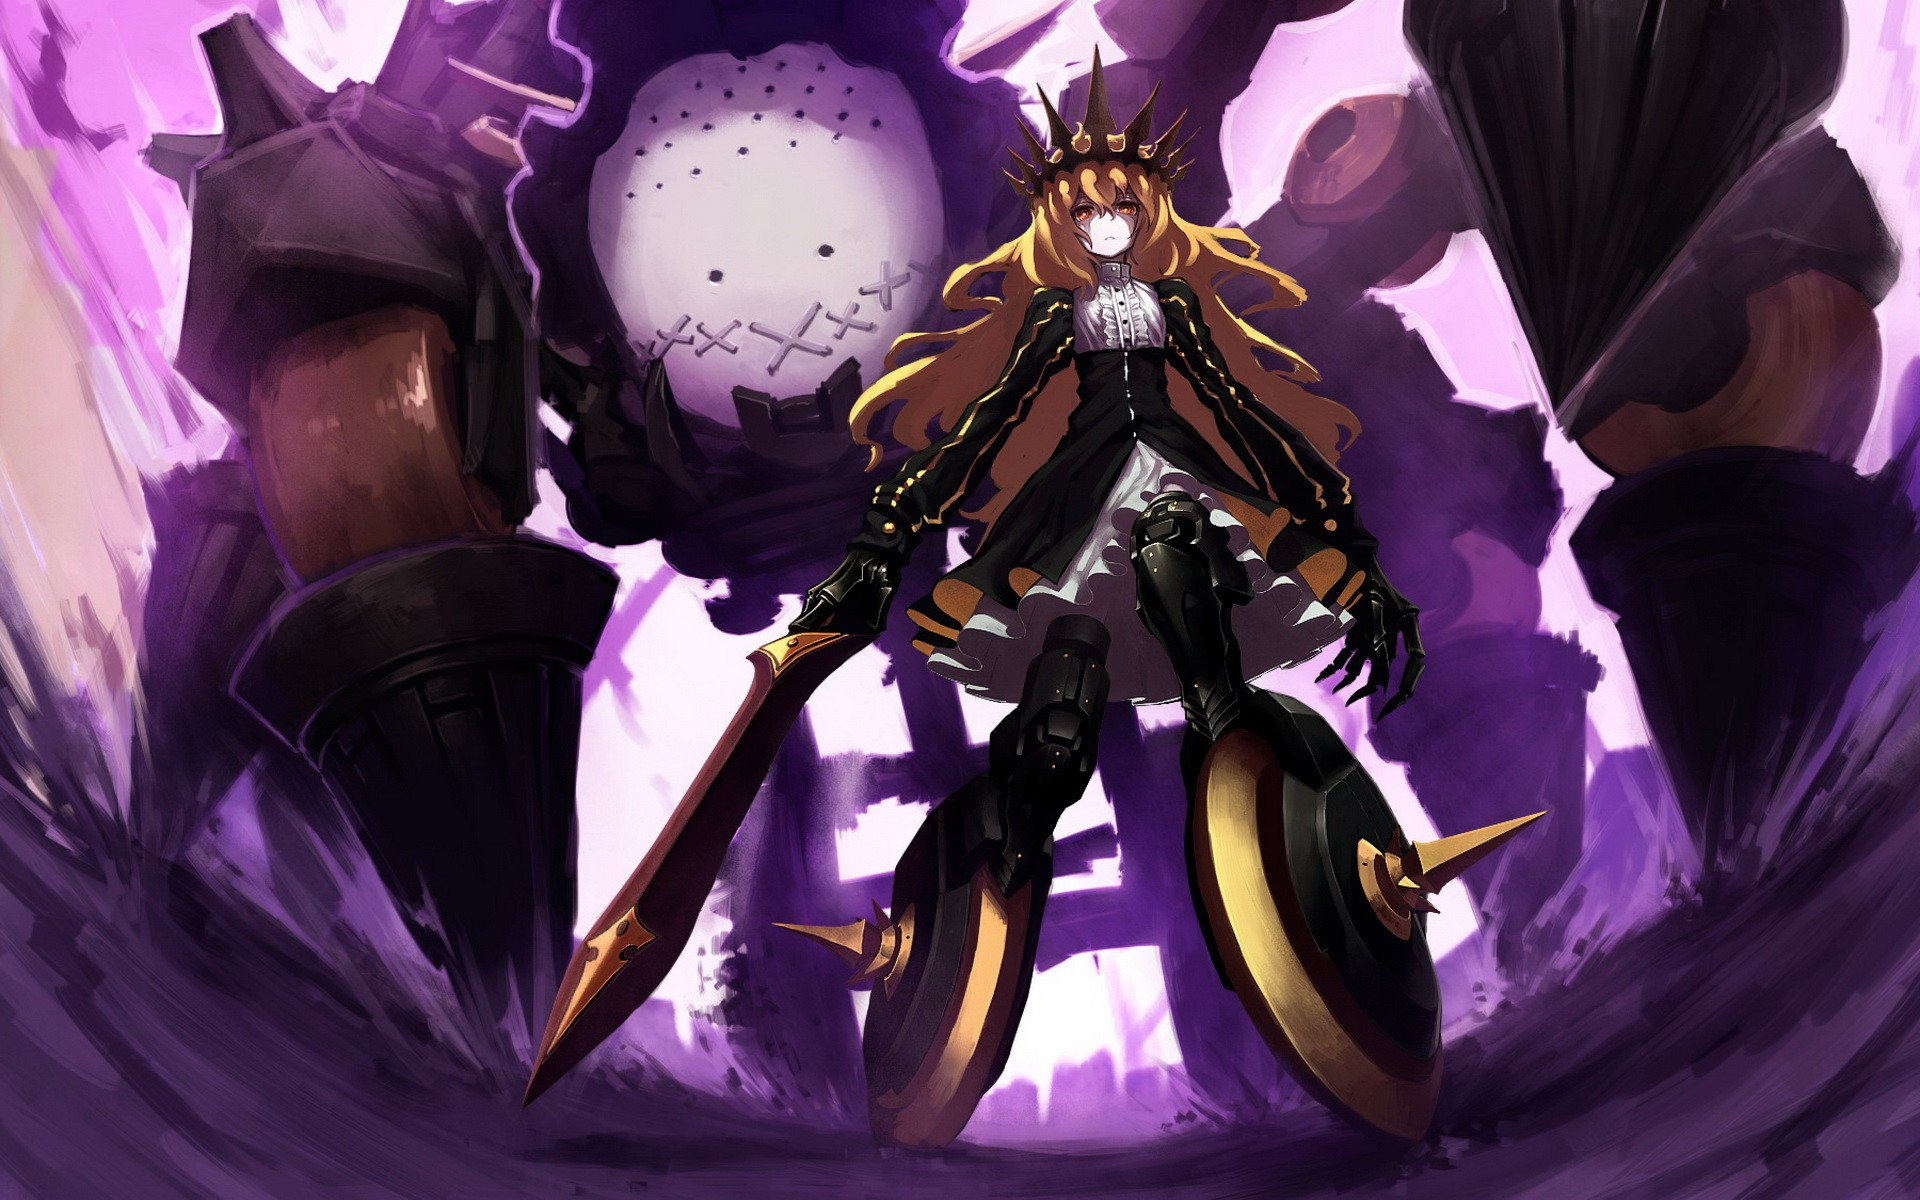 anime masamune shooter rock manga shirow dress wallpapers chariot weapons blondes claws sciencefiction background desktop orange purple wall wallpoper alphacoders